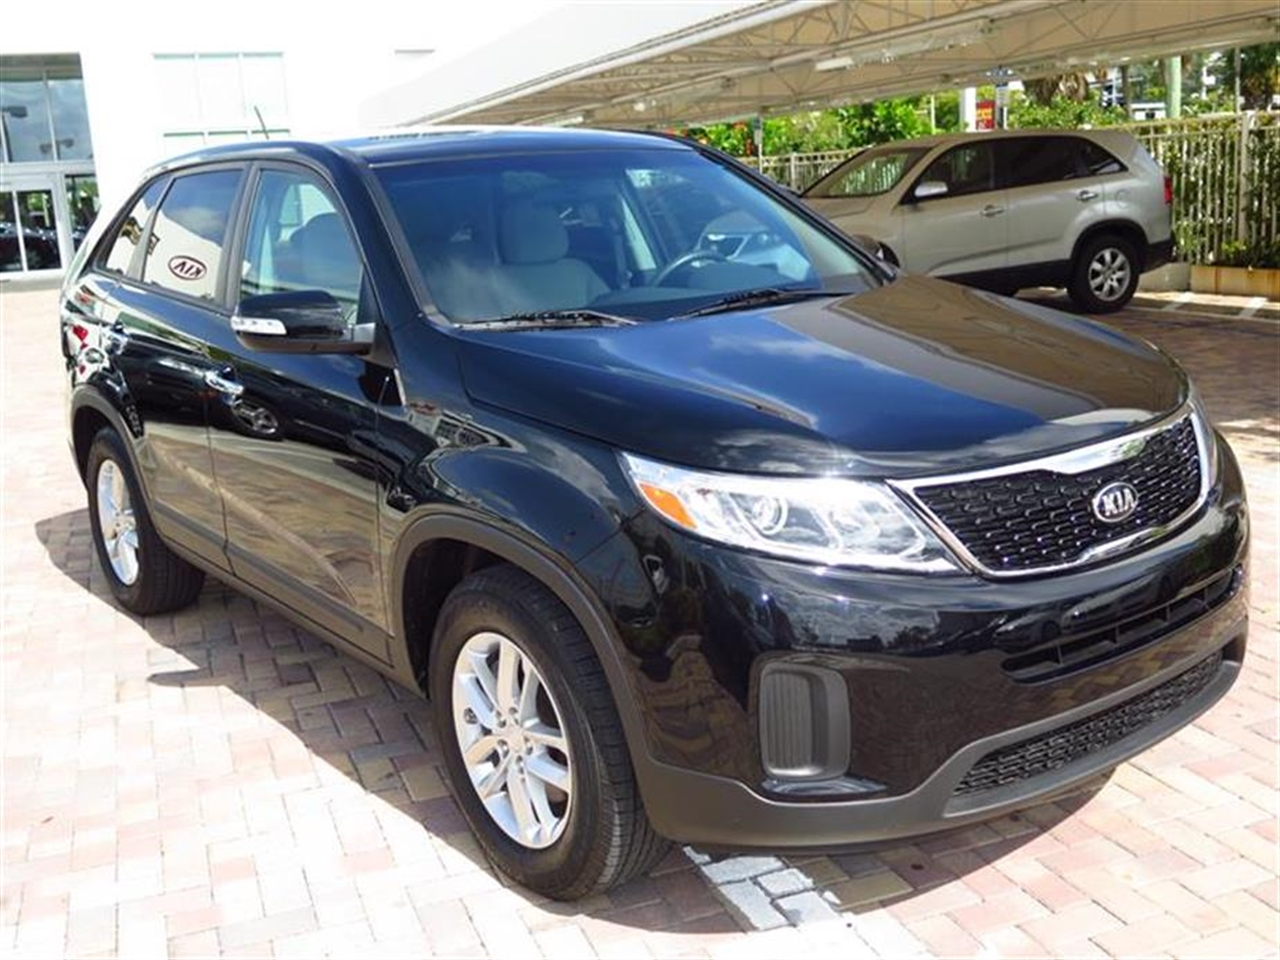 2014 KIA SORENTO LX 2WD 4dr I4 LX 13657 miles 2 Seatback Storage Pockets 3 12V DC Power Outlets